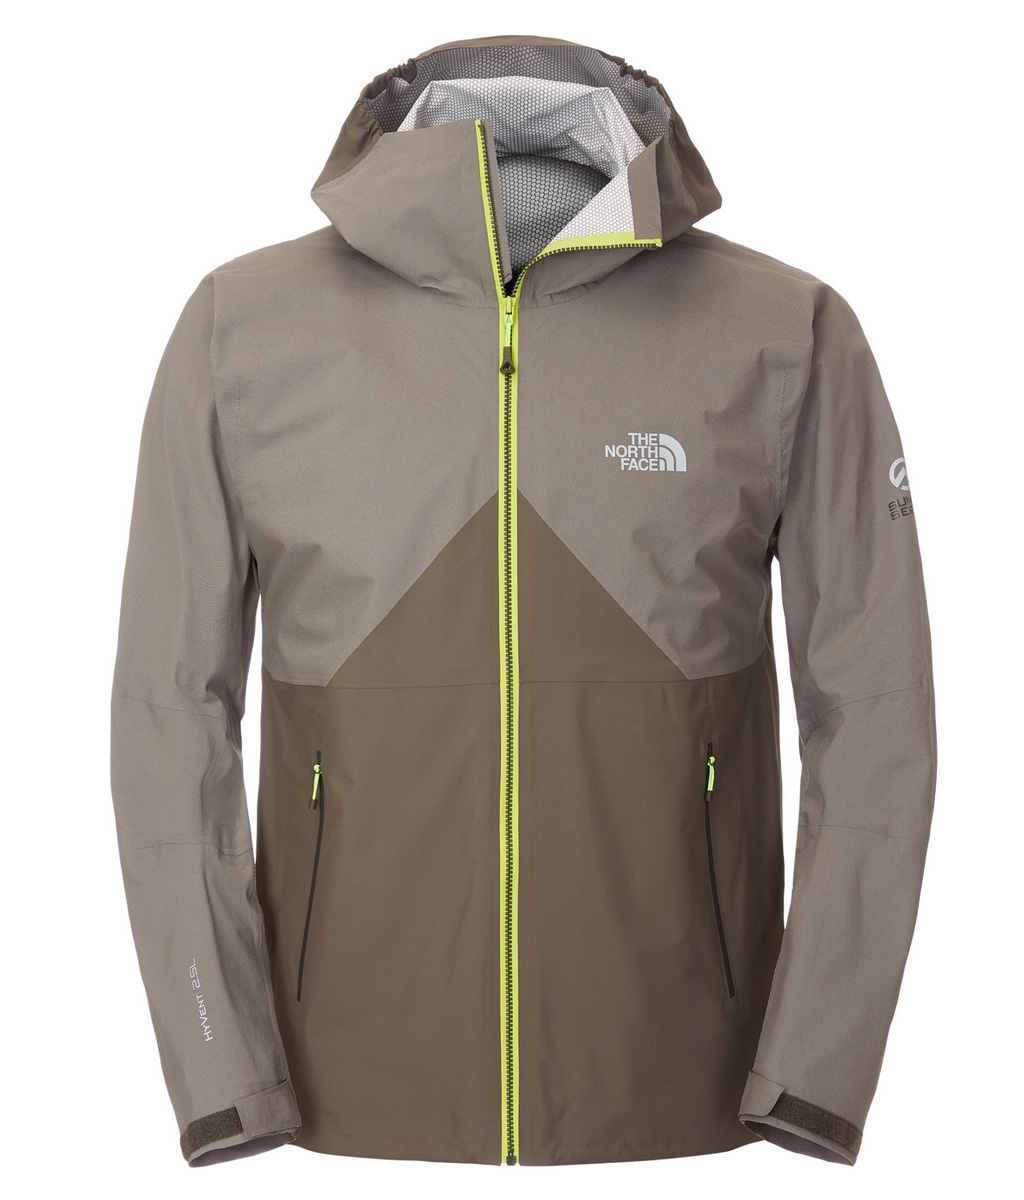 The North Face Fuseform Originator jkt